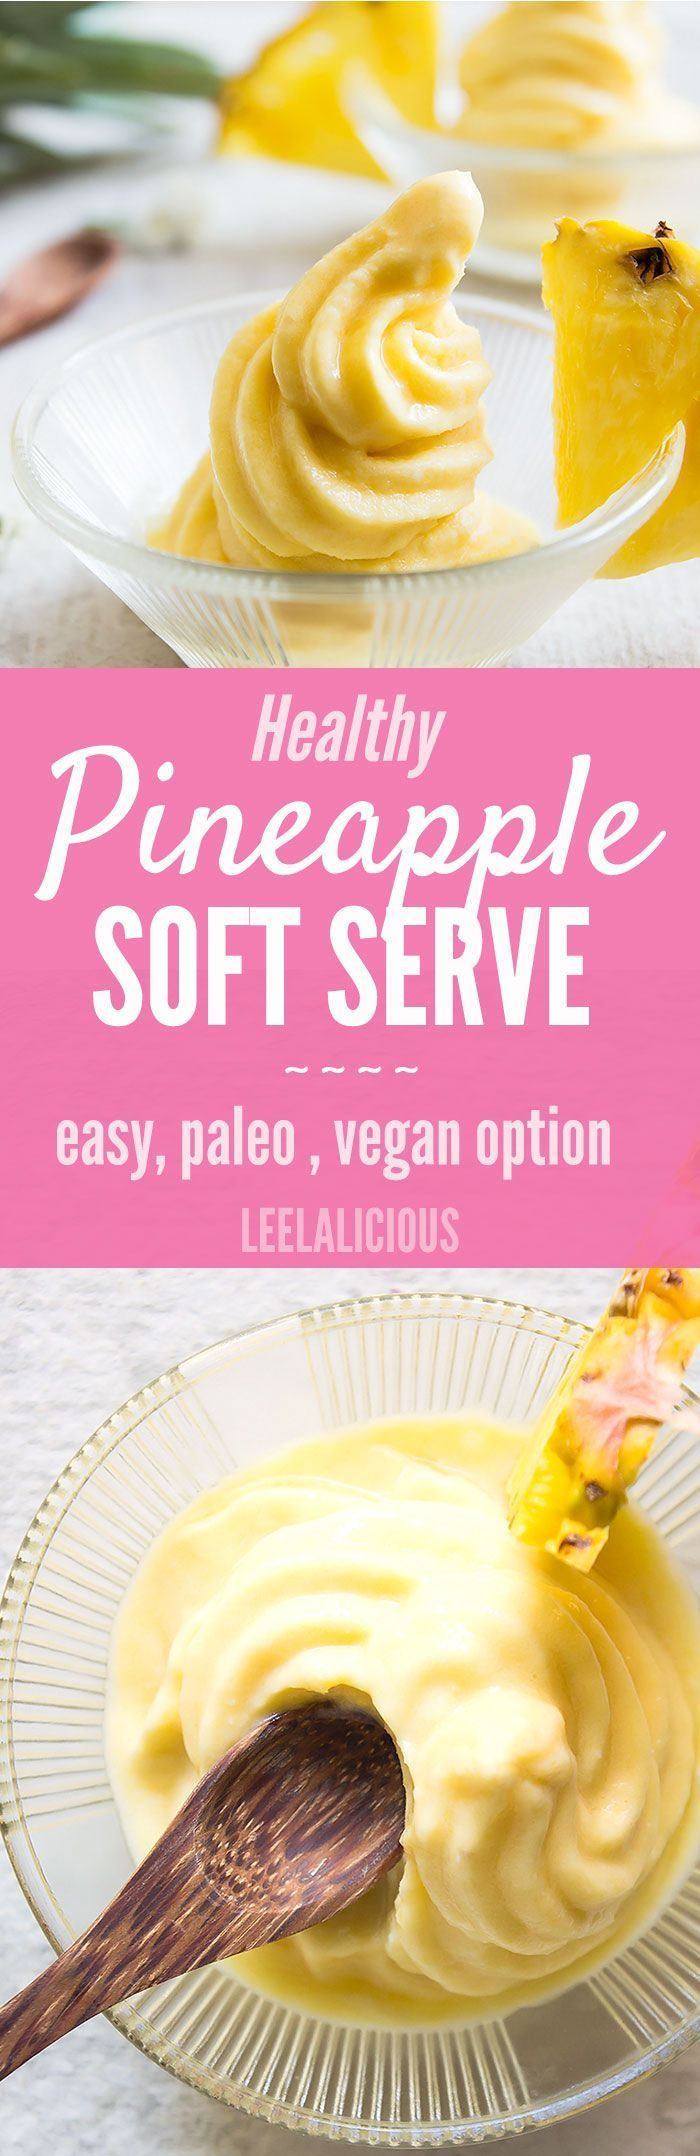 Pineapple Whip is a delicious frozen treat that is actually healthy and super easy to make. Some say it tastes just like at Disneyland, only this is clean eating, paleo friendly and includes a vegan option. (healthy fruit smoothies clean eating)